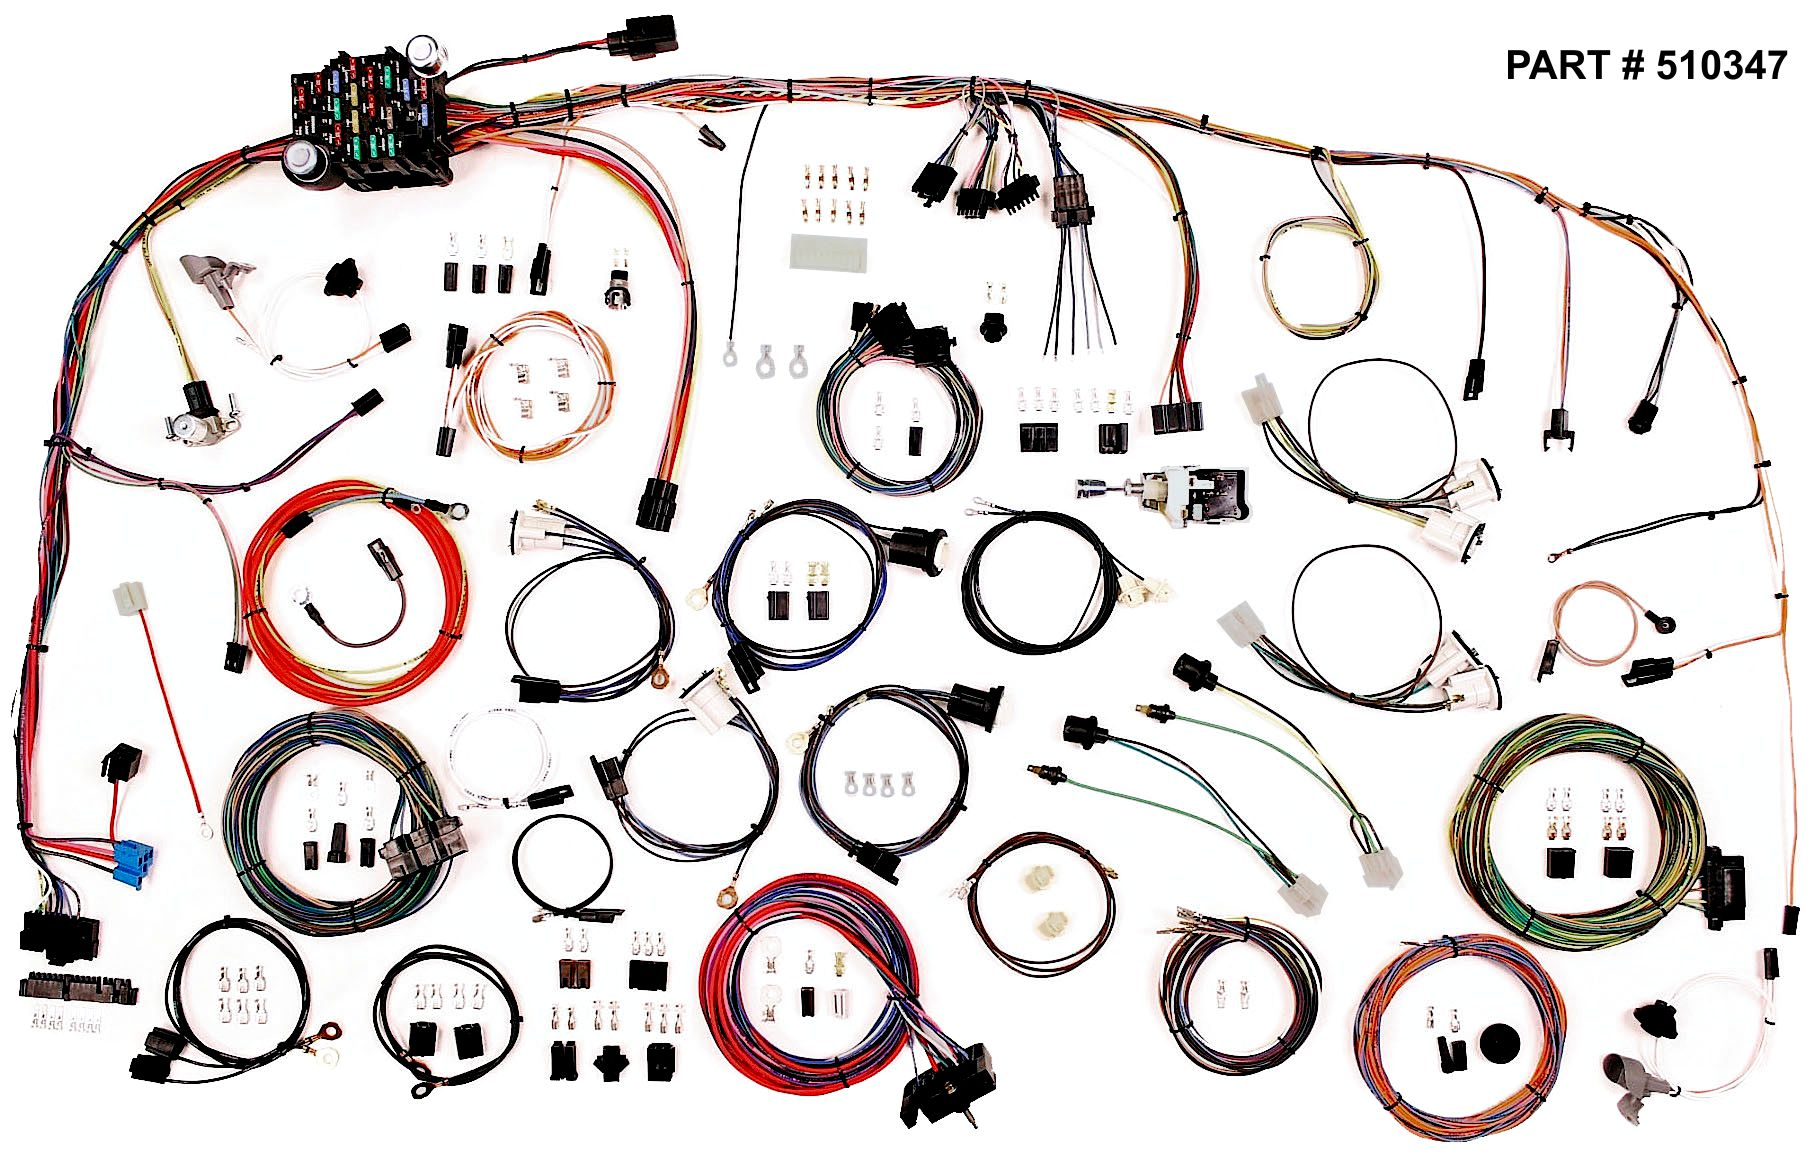 hight resolution of 1973 82 chevrolet gmc truck classic update series wiring system part 510347